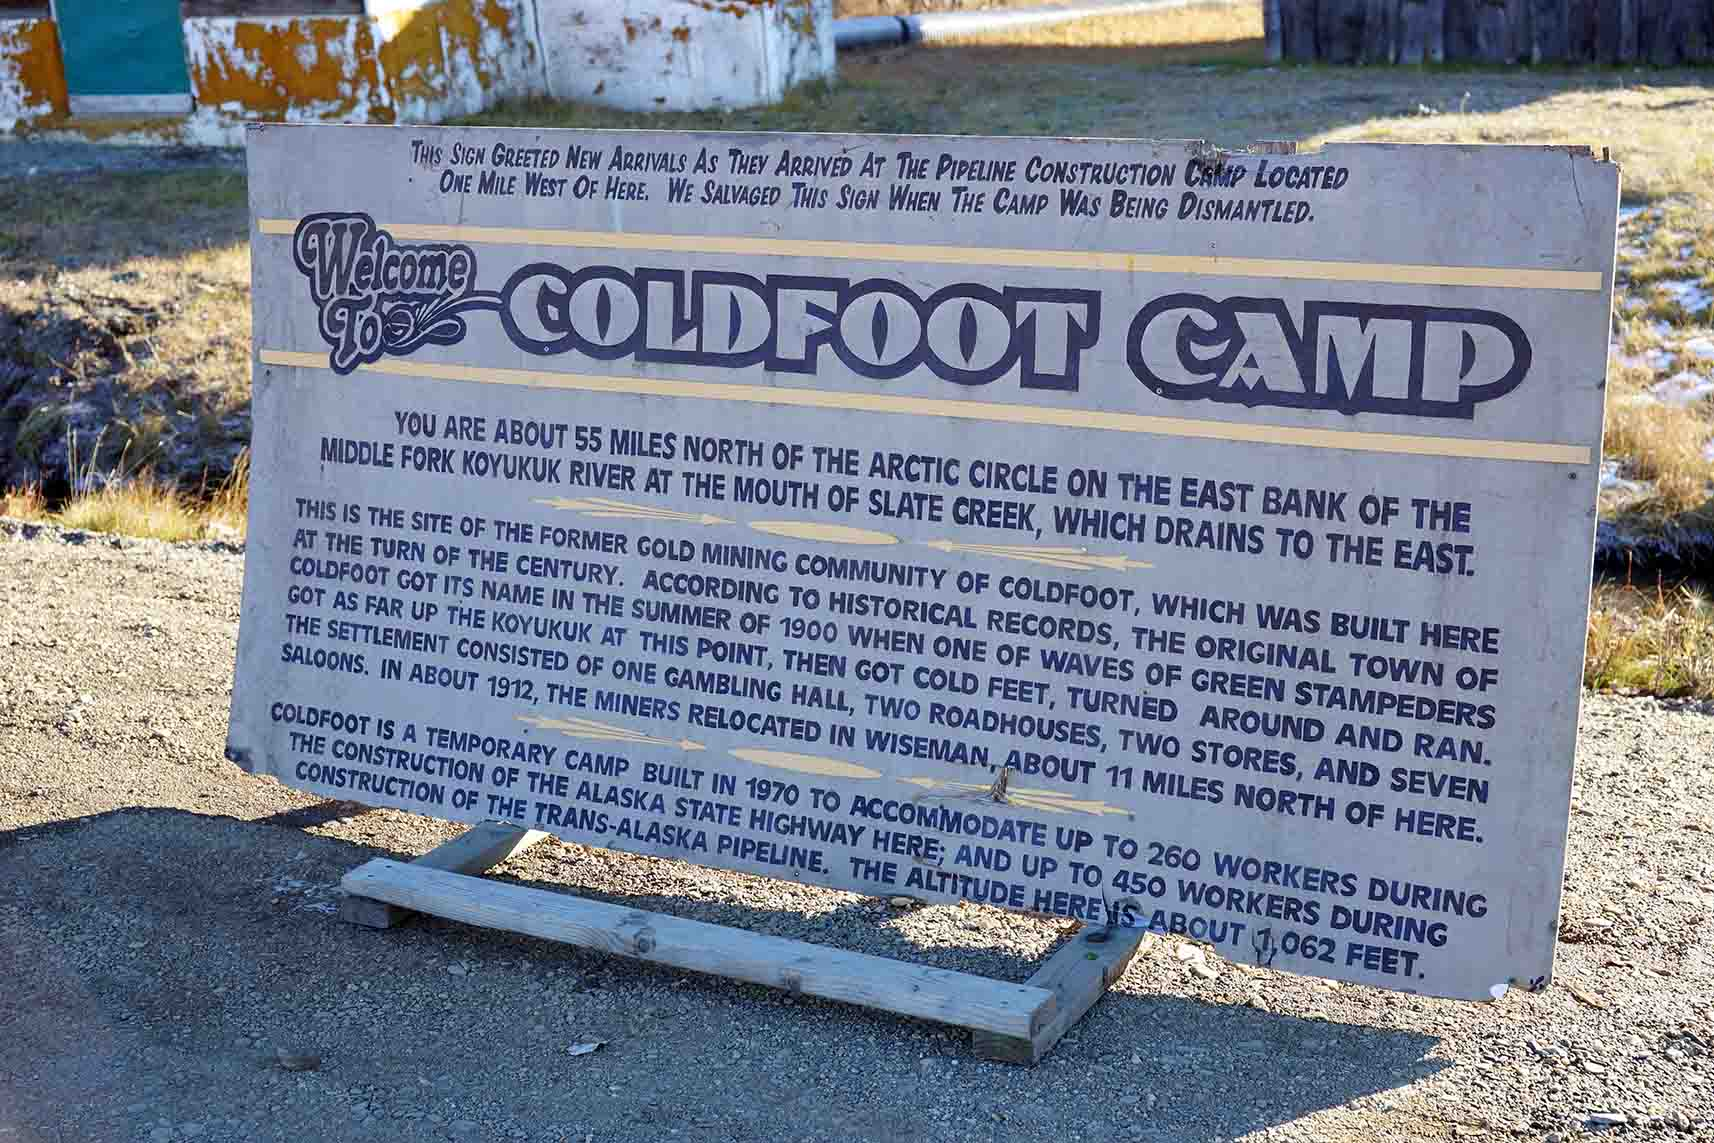 About - Read about Coldfoot Camp's rich history, how to prepare for your trip to the Arctic, and what we have to offer.